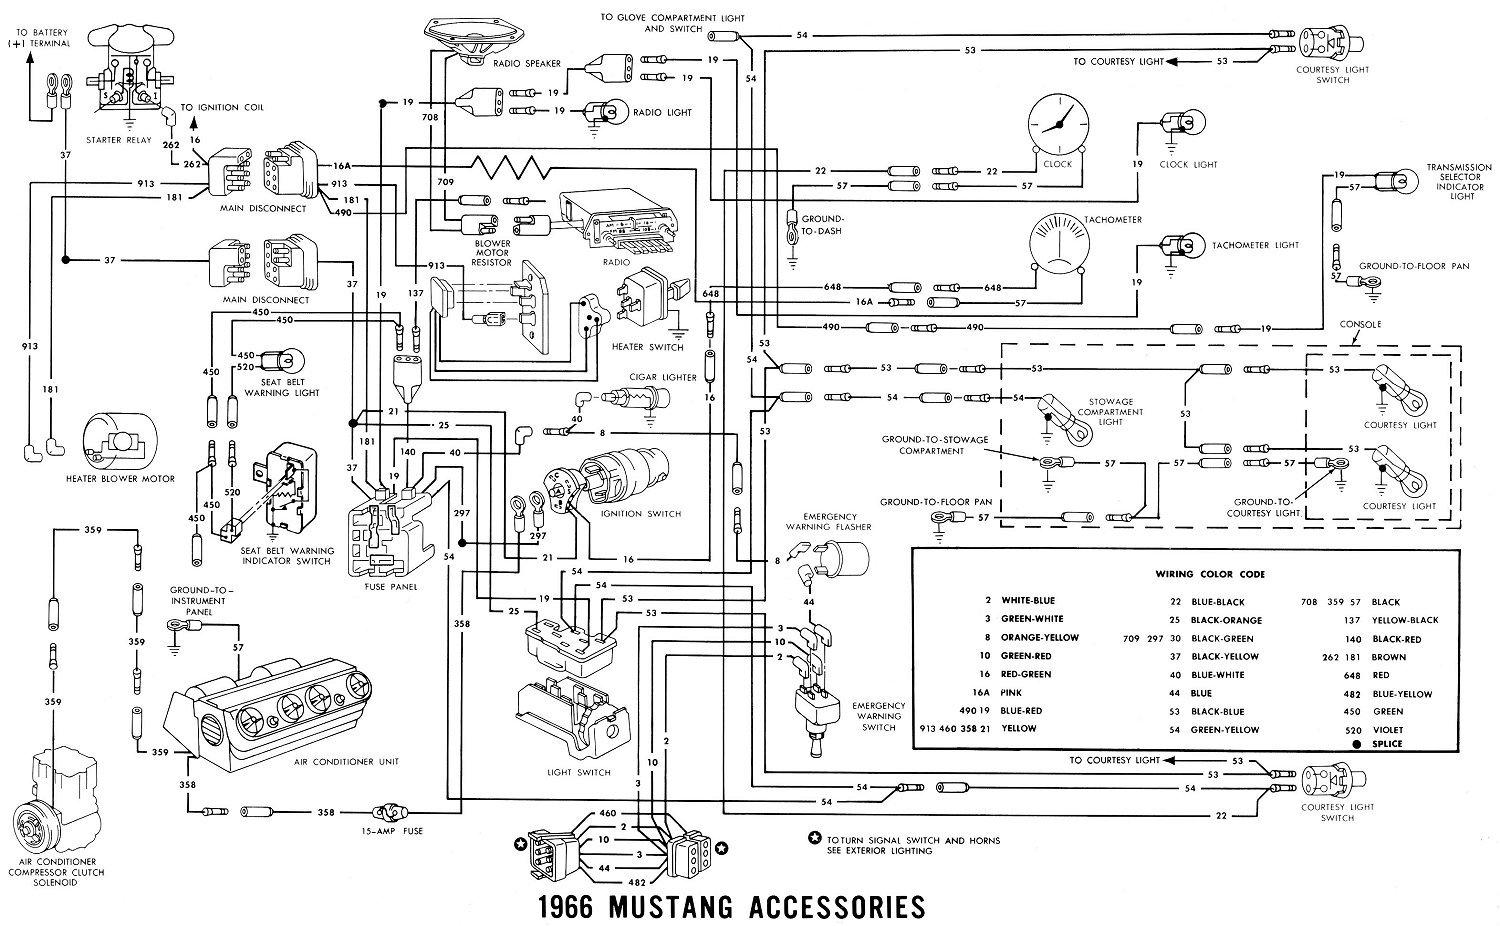 1970 mustang wiring harness diagram - wiring diagram var hen-best-a -  hen-best-a.viblock.it  viblock.it